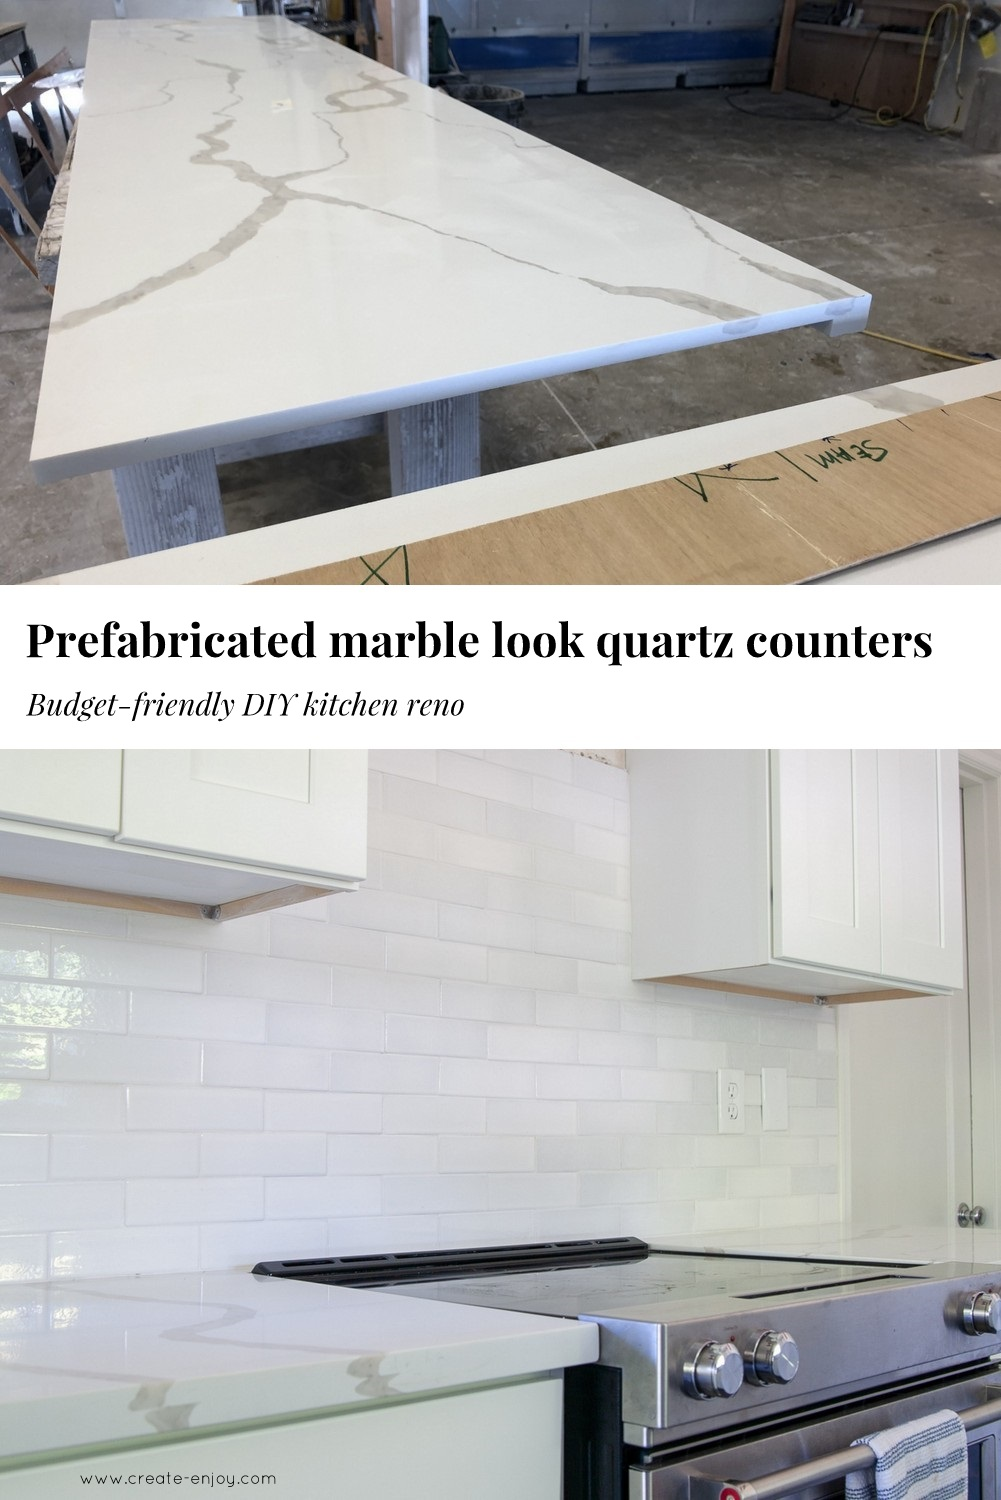 - Prefab Marble Look Countertops - Budget-friendly And DIY-friendly